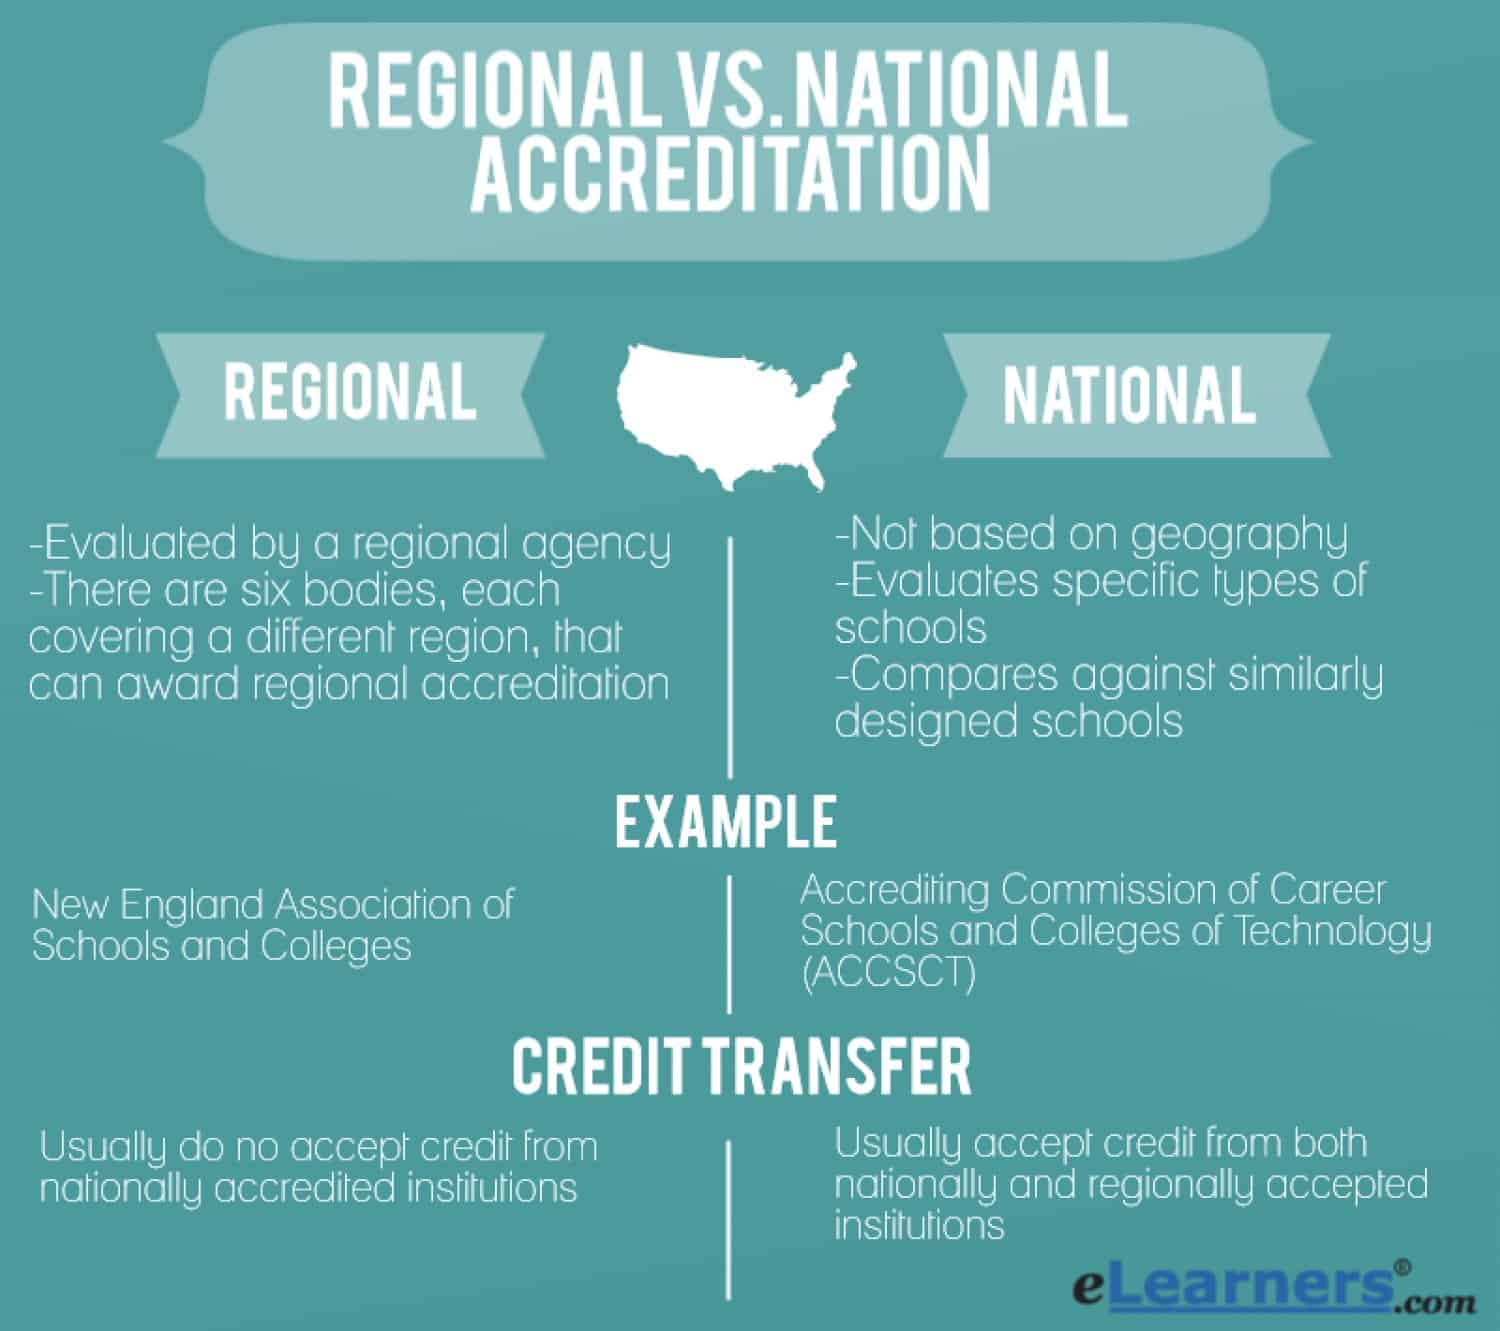 regional-vs-national-accreditation